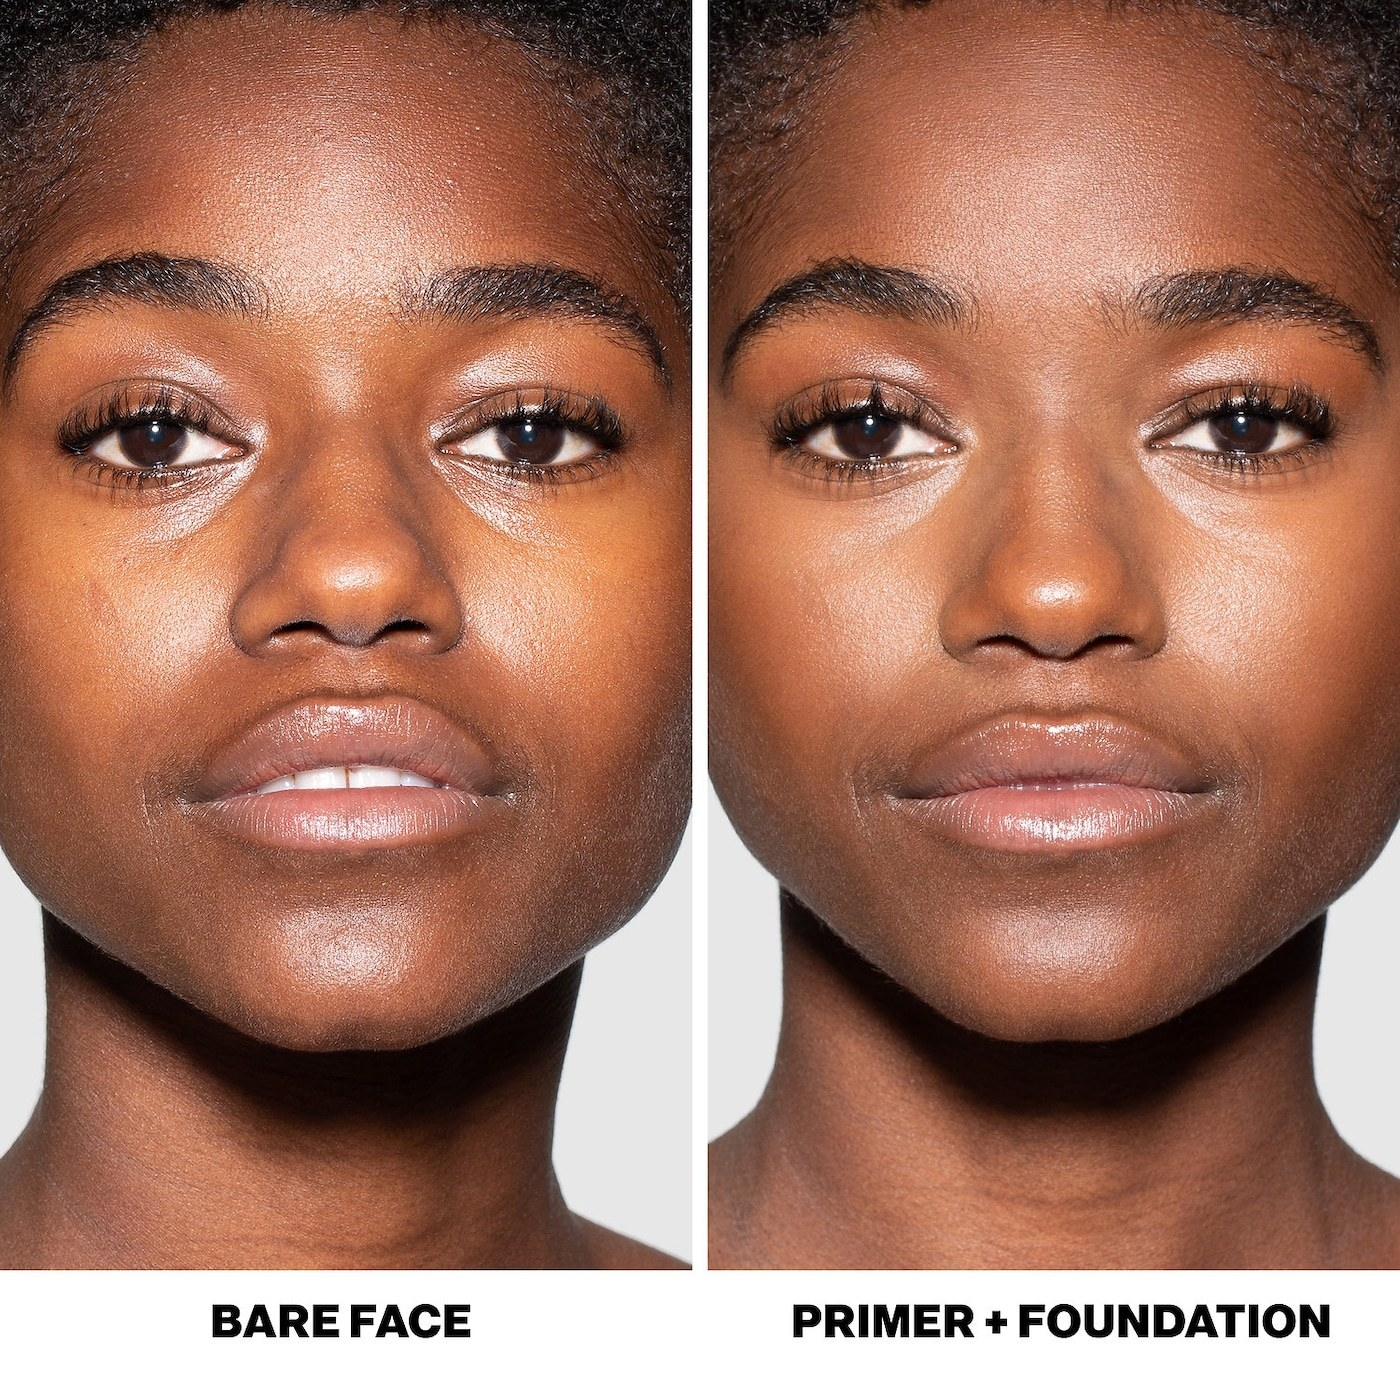 Before and after pic of a model using the Smashbox Photo Finish primer. The after pic shows a more even skin tone and less visible pores.